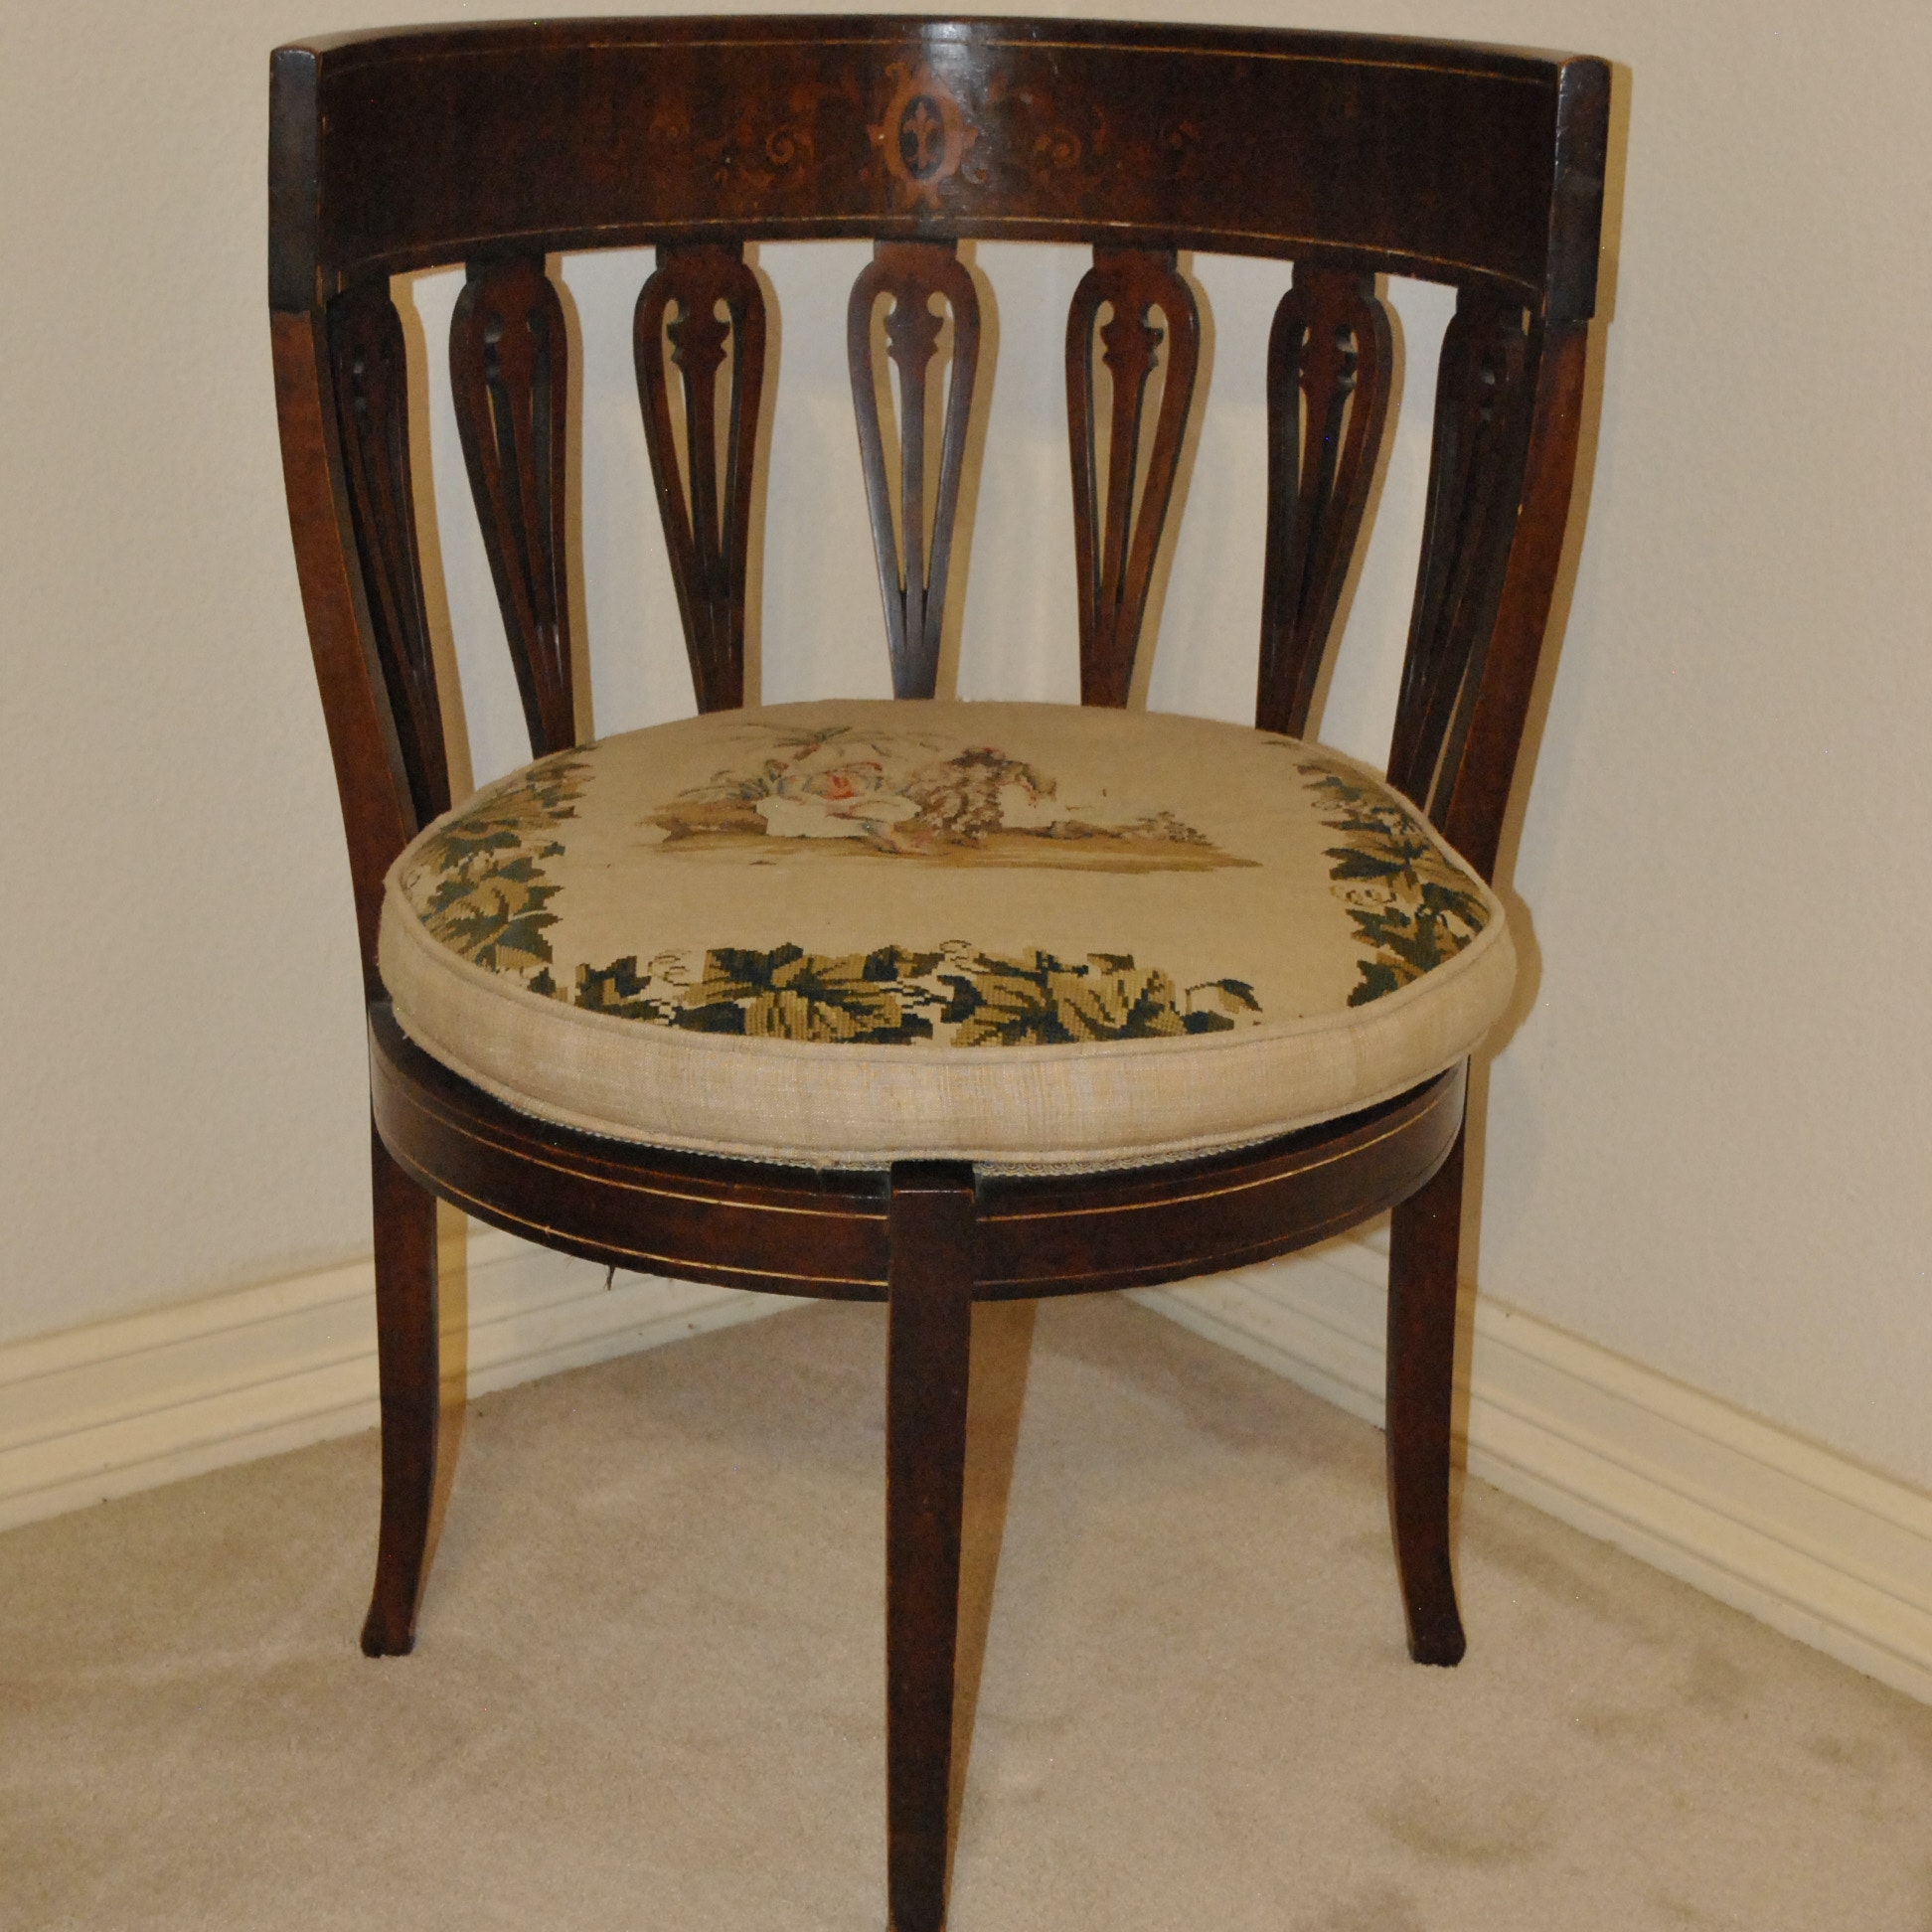 19th Century Corner Chair with Marquetry Inlay